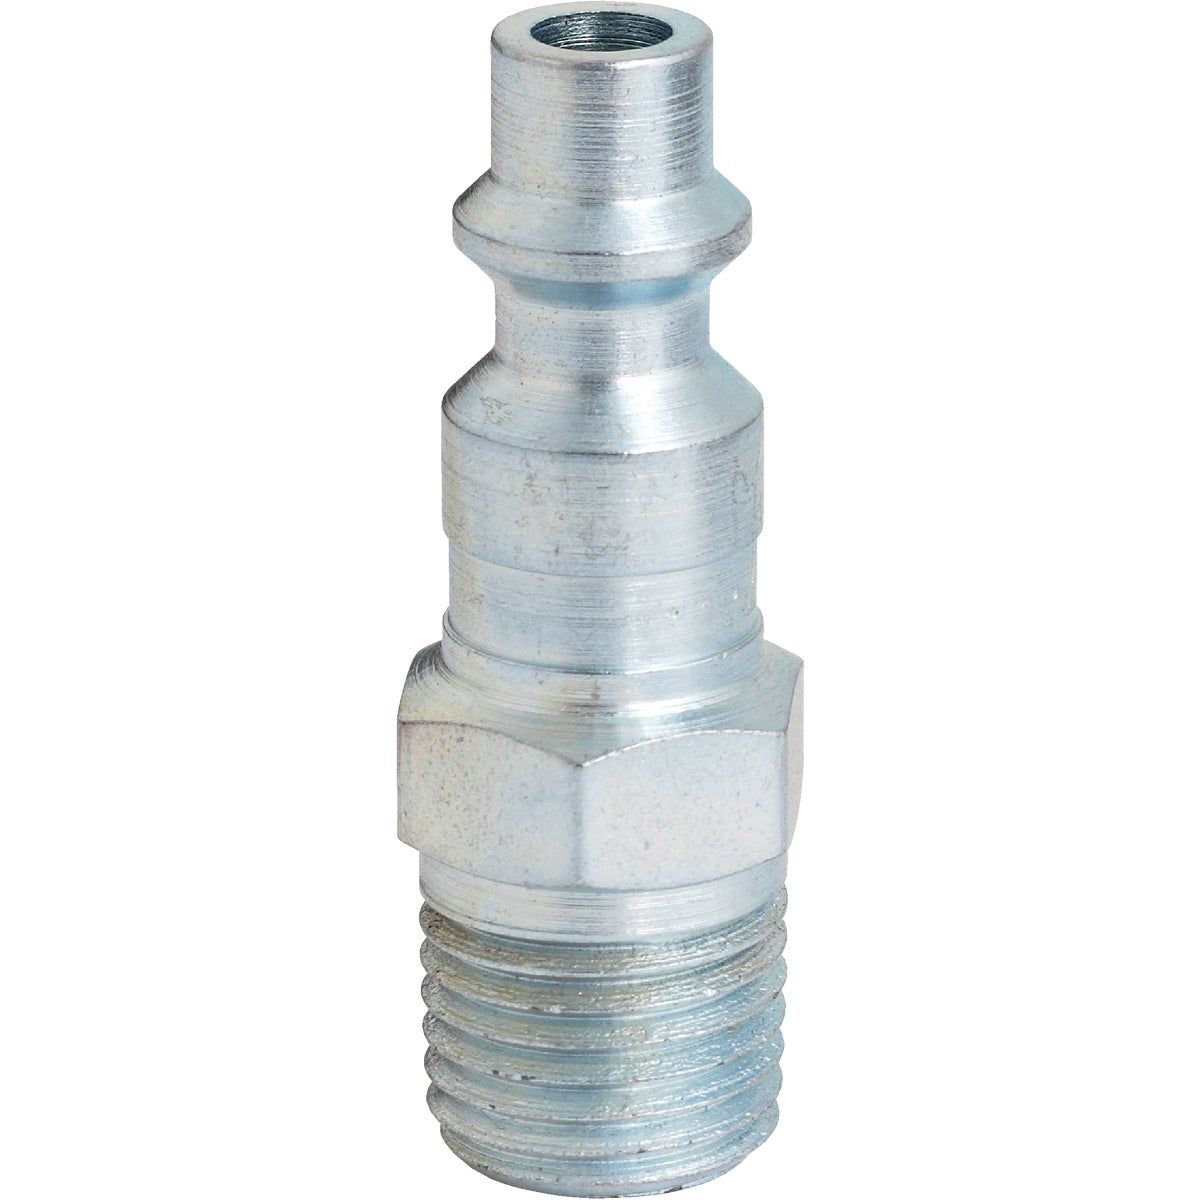 1/4 MALE M STYLE PLUG - S-727 by Milton Ind/ Incom